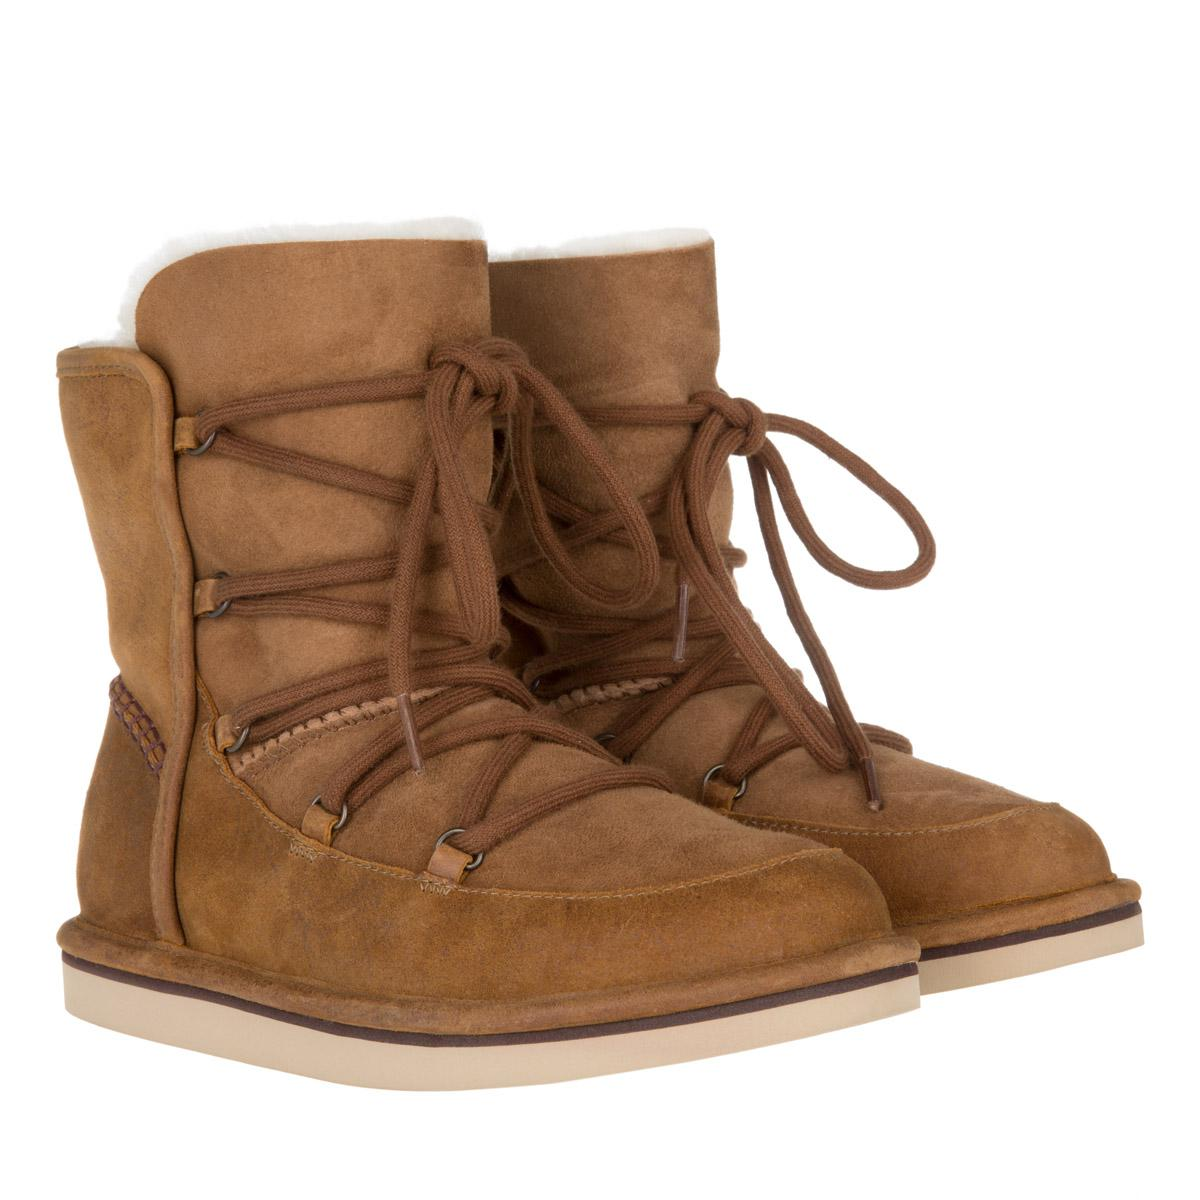 243aec78e67 UGG W Lodge Chestnut in Brown - Lyst